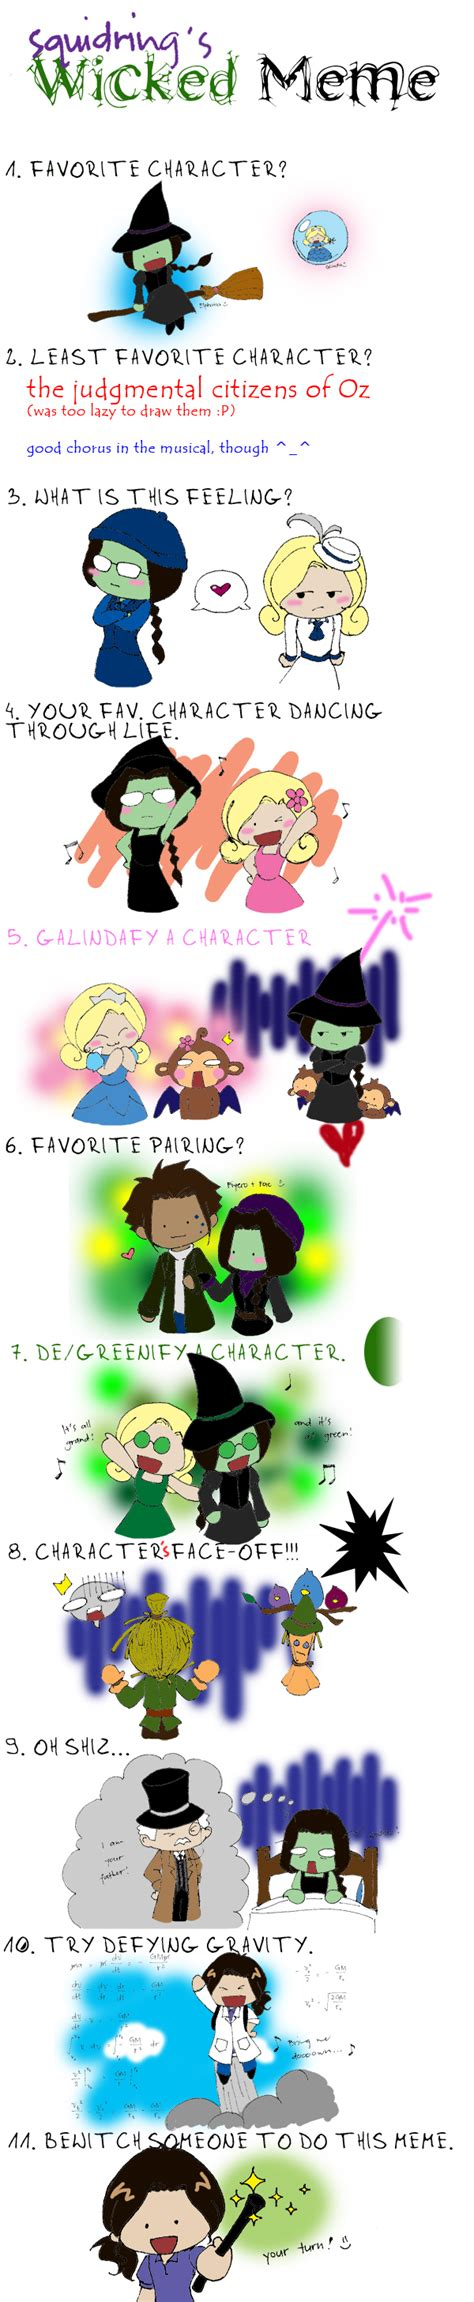 Wicked The Musical Memes - wicked meme by squidring on deviantart